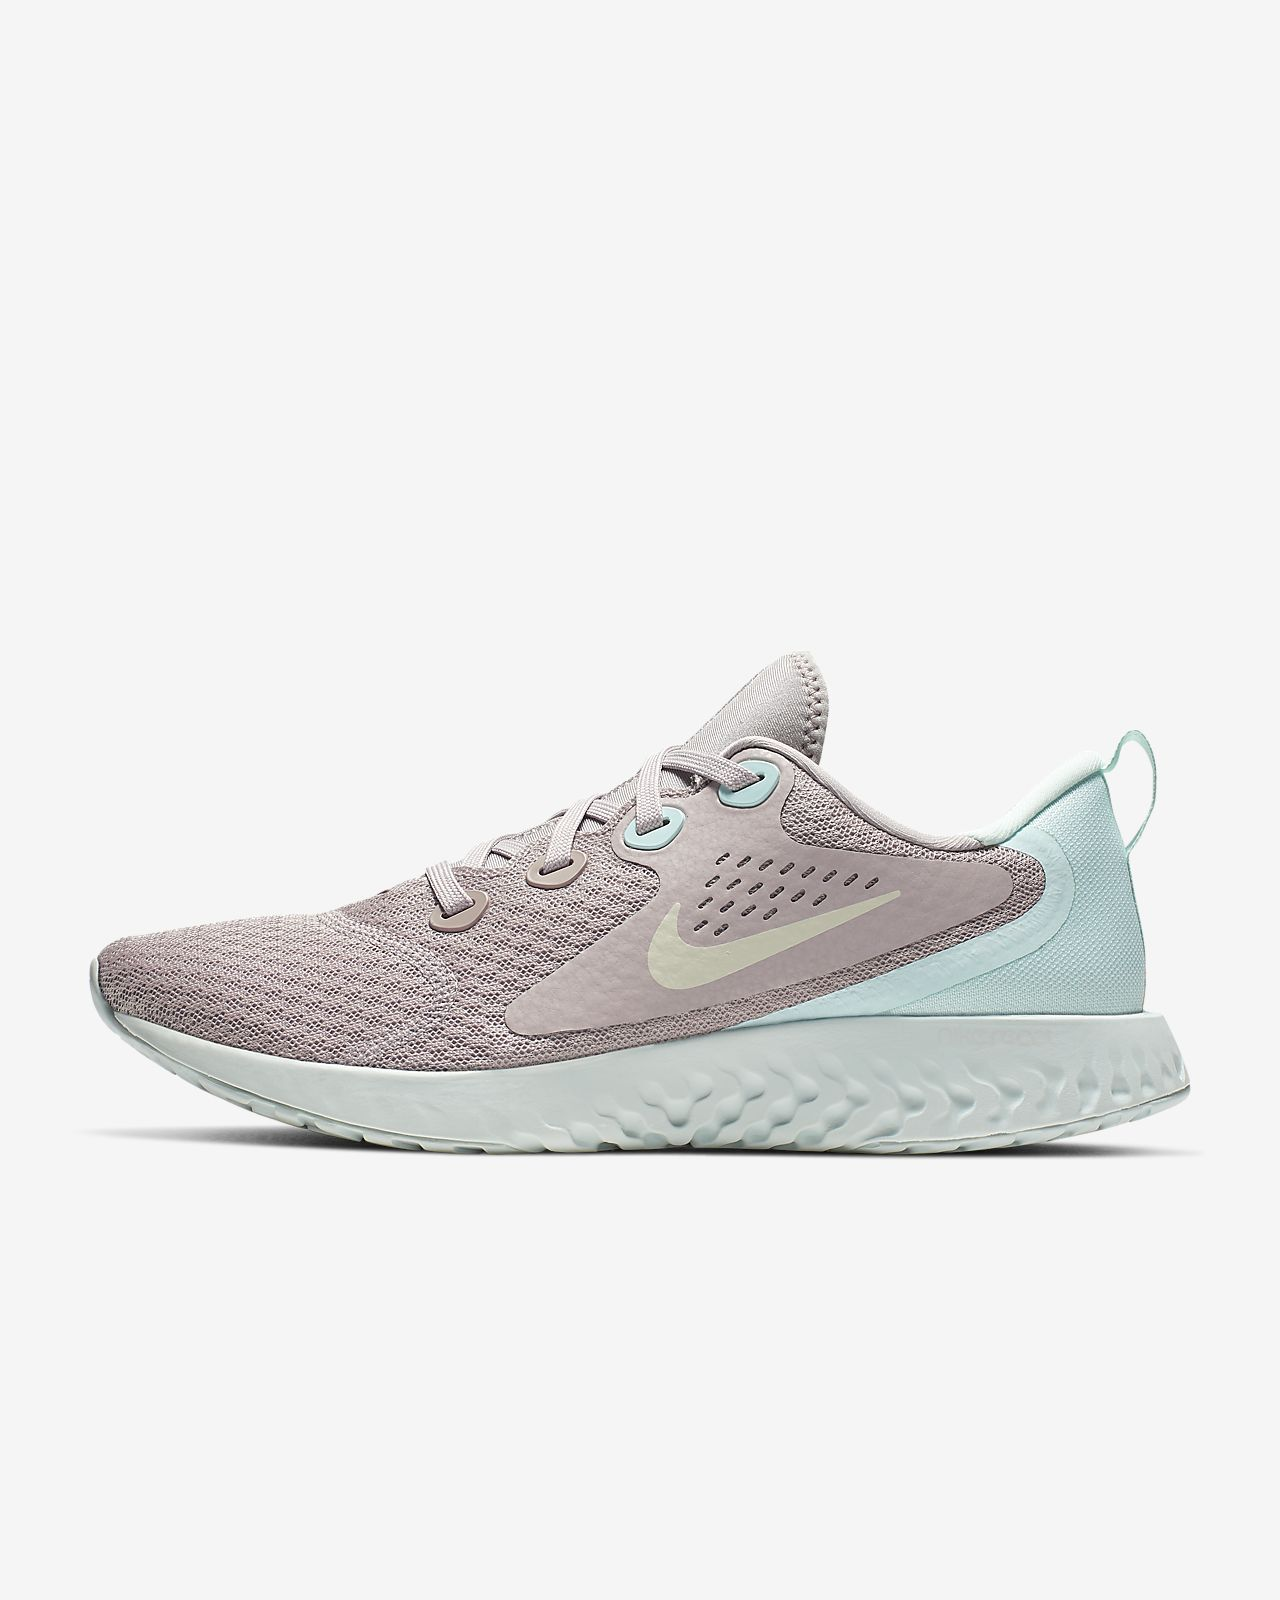 60e03e81735a Nike Legend React Women s Running Shoe. Nike.com AU